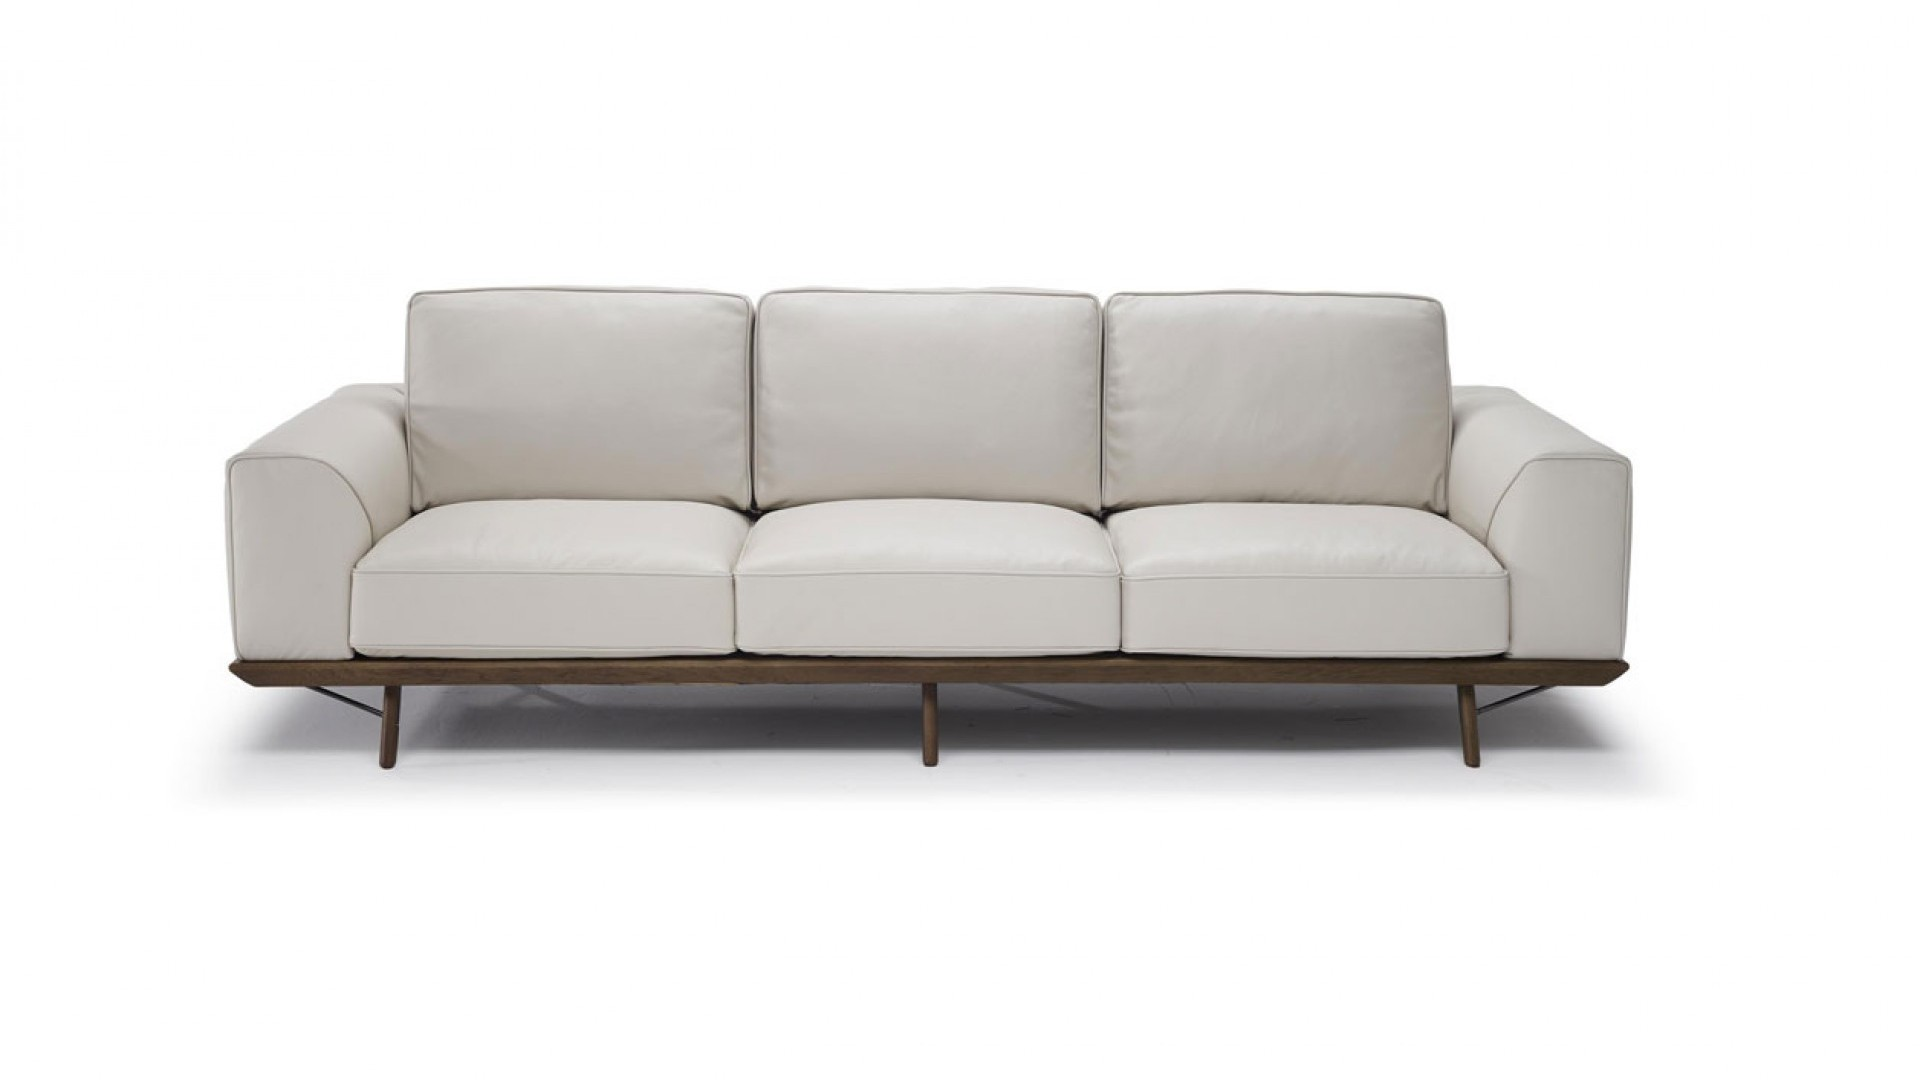 Natuzi Sofa Sofas In Leather And Fabric Natuzzi Italia Thesofa